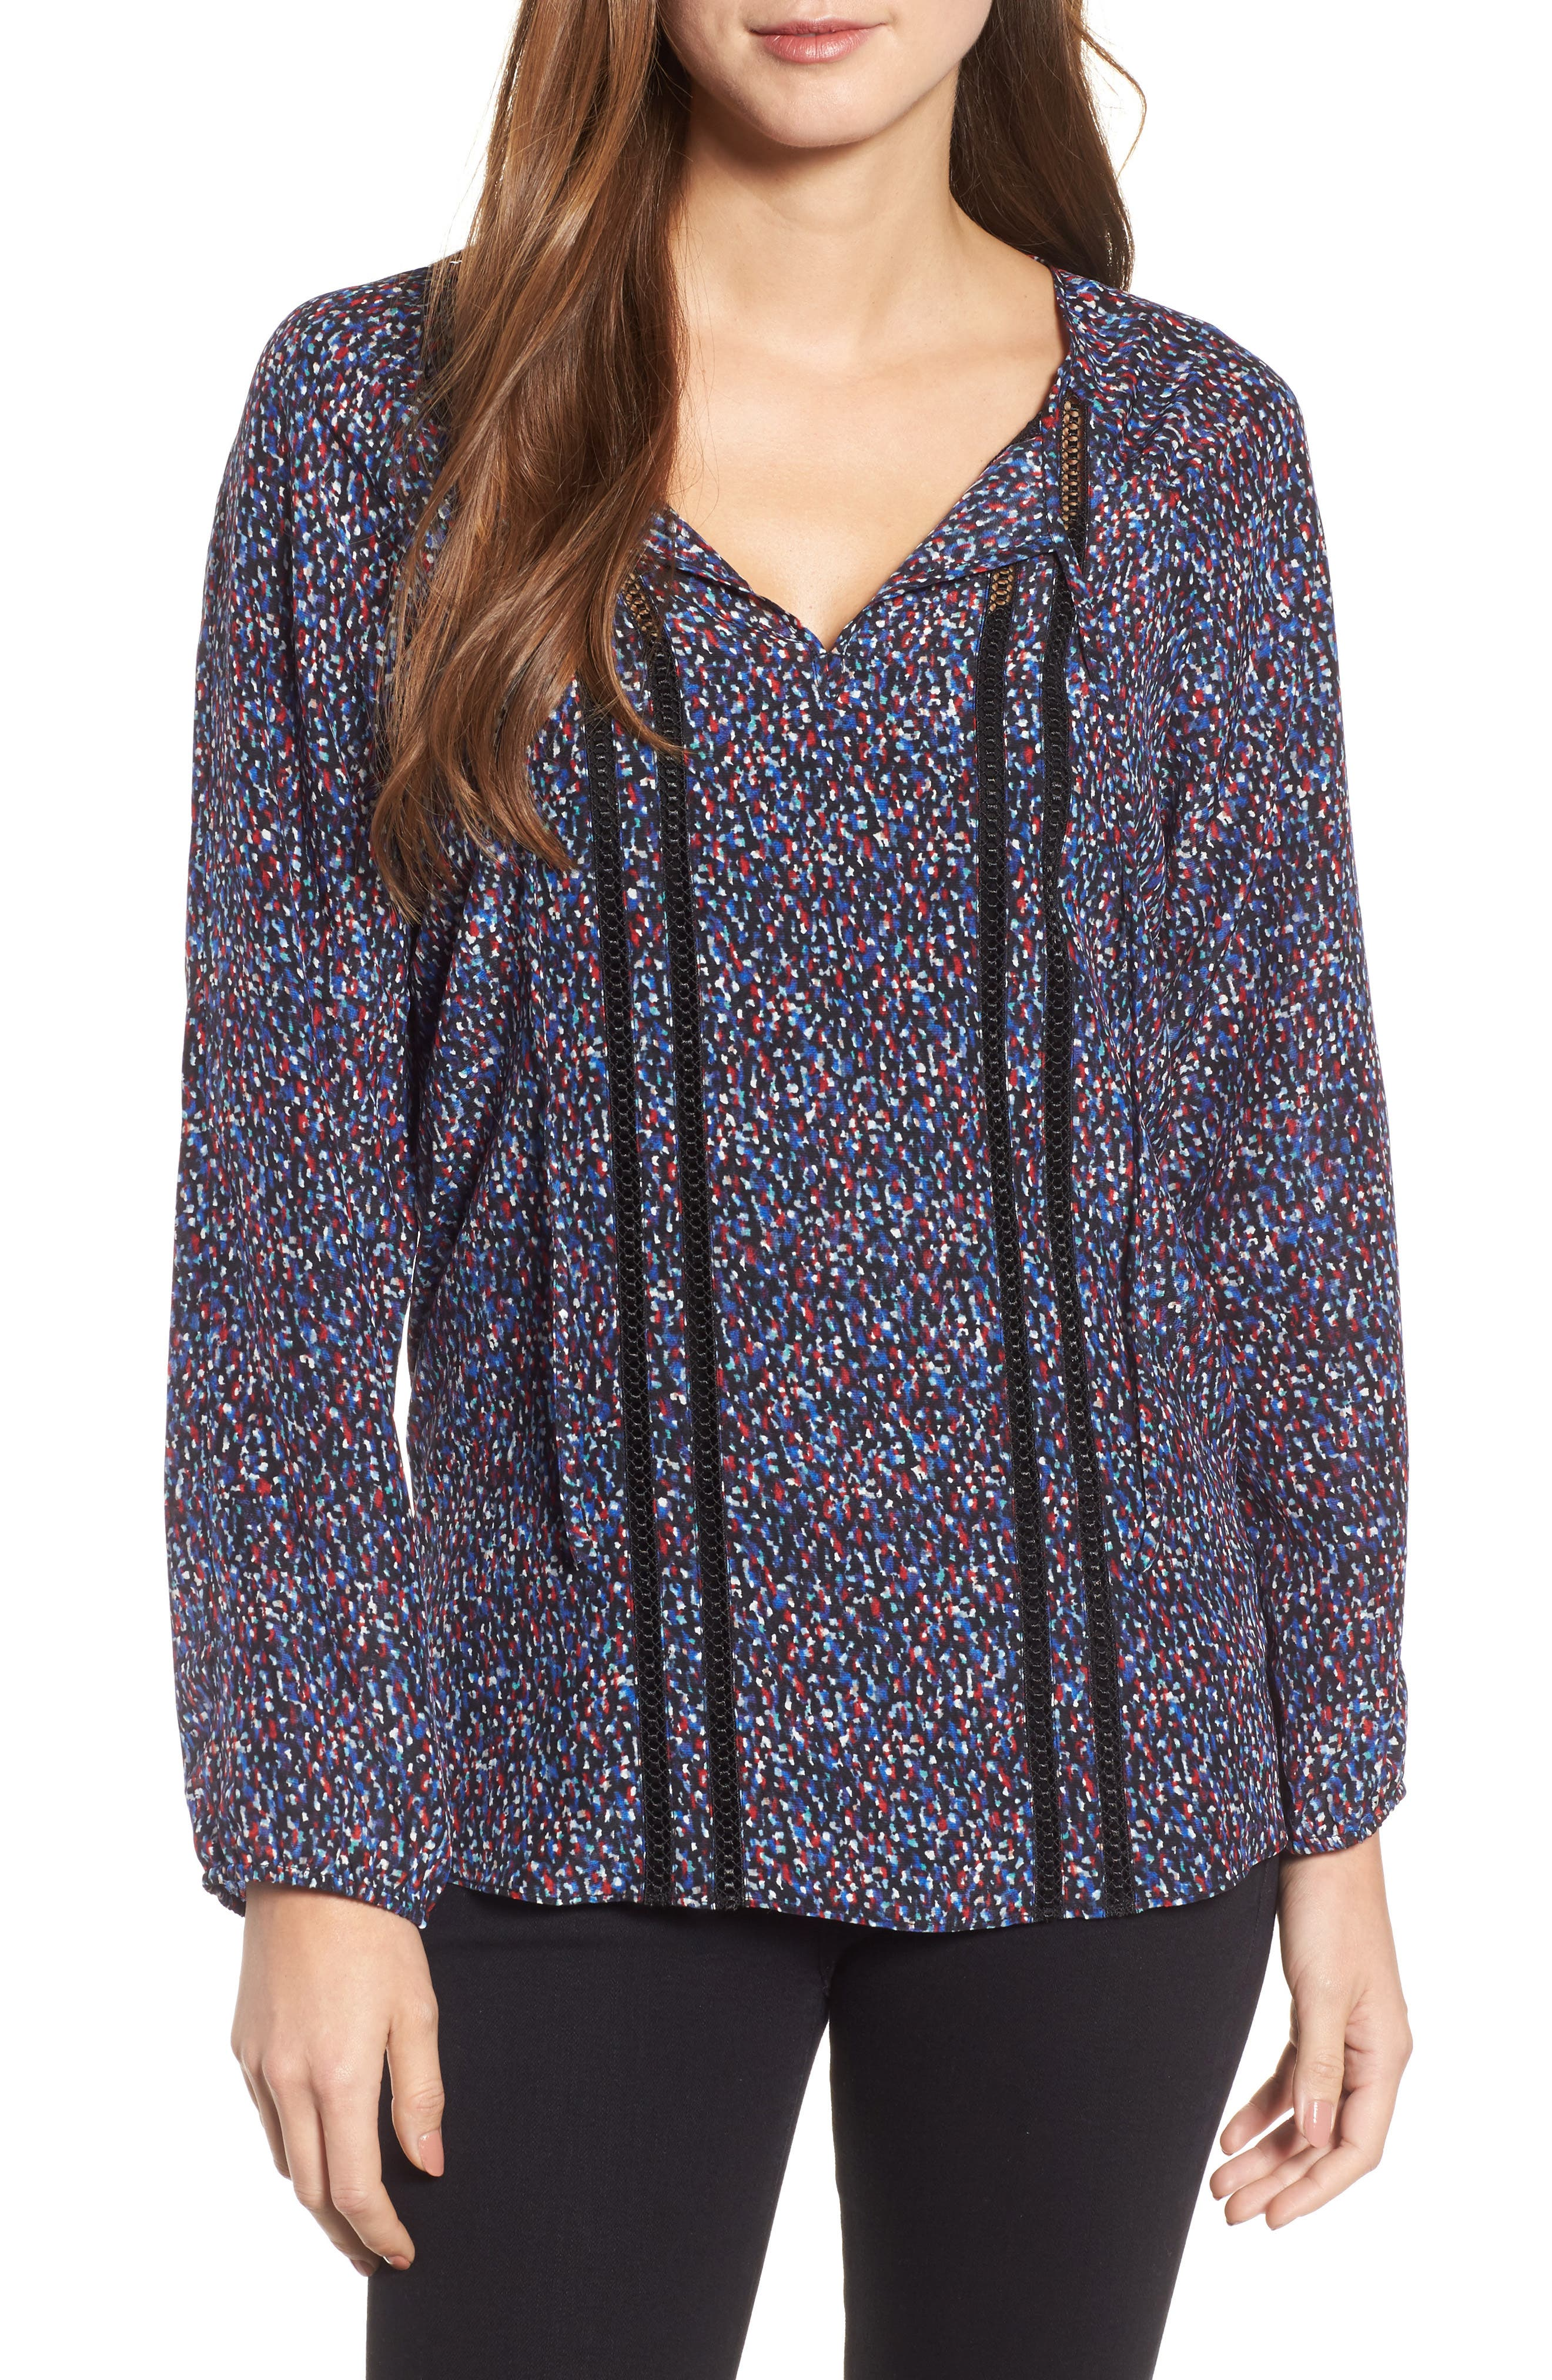 Seeing Stars Embroidered Inset Top,                         Main,                         color, Blue Multi